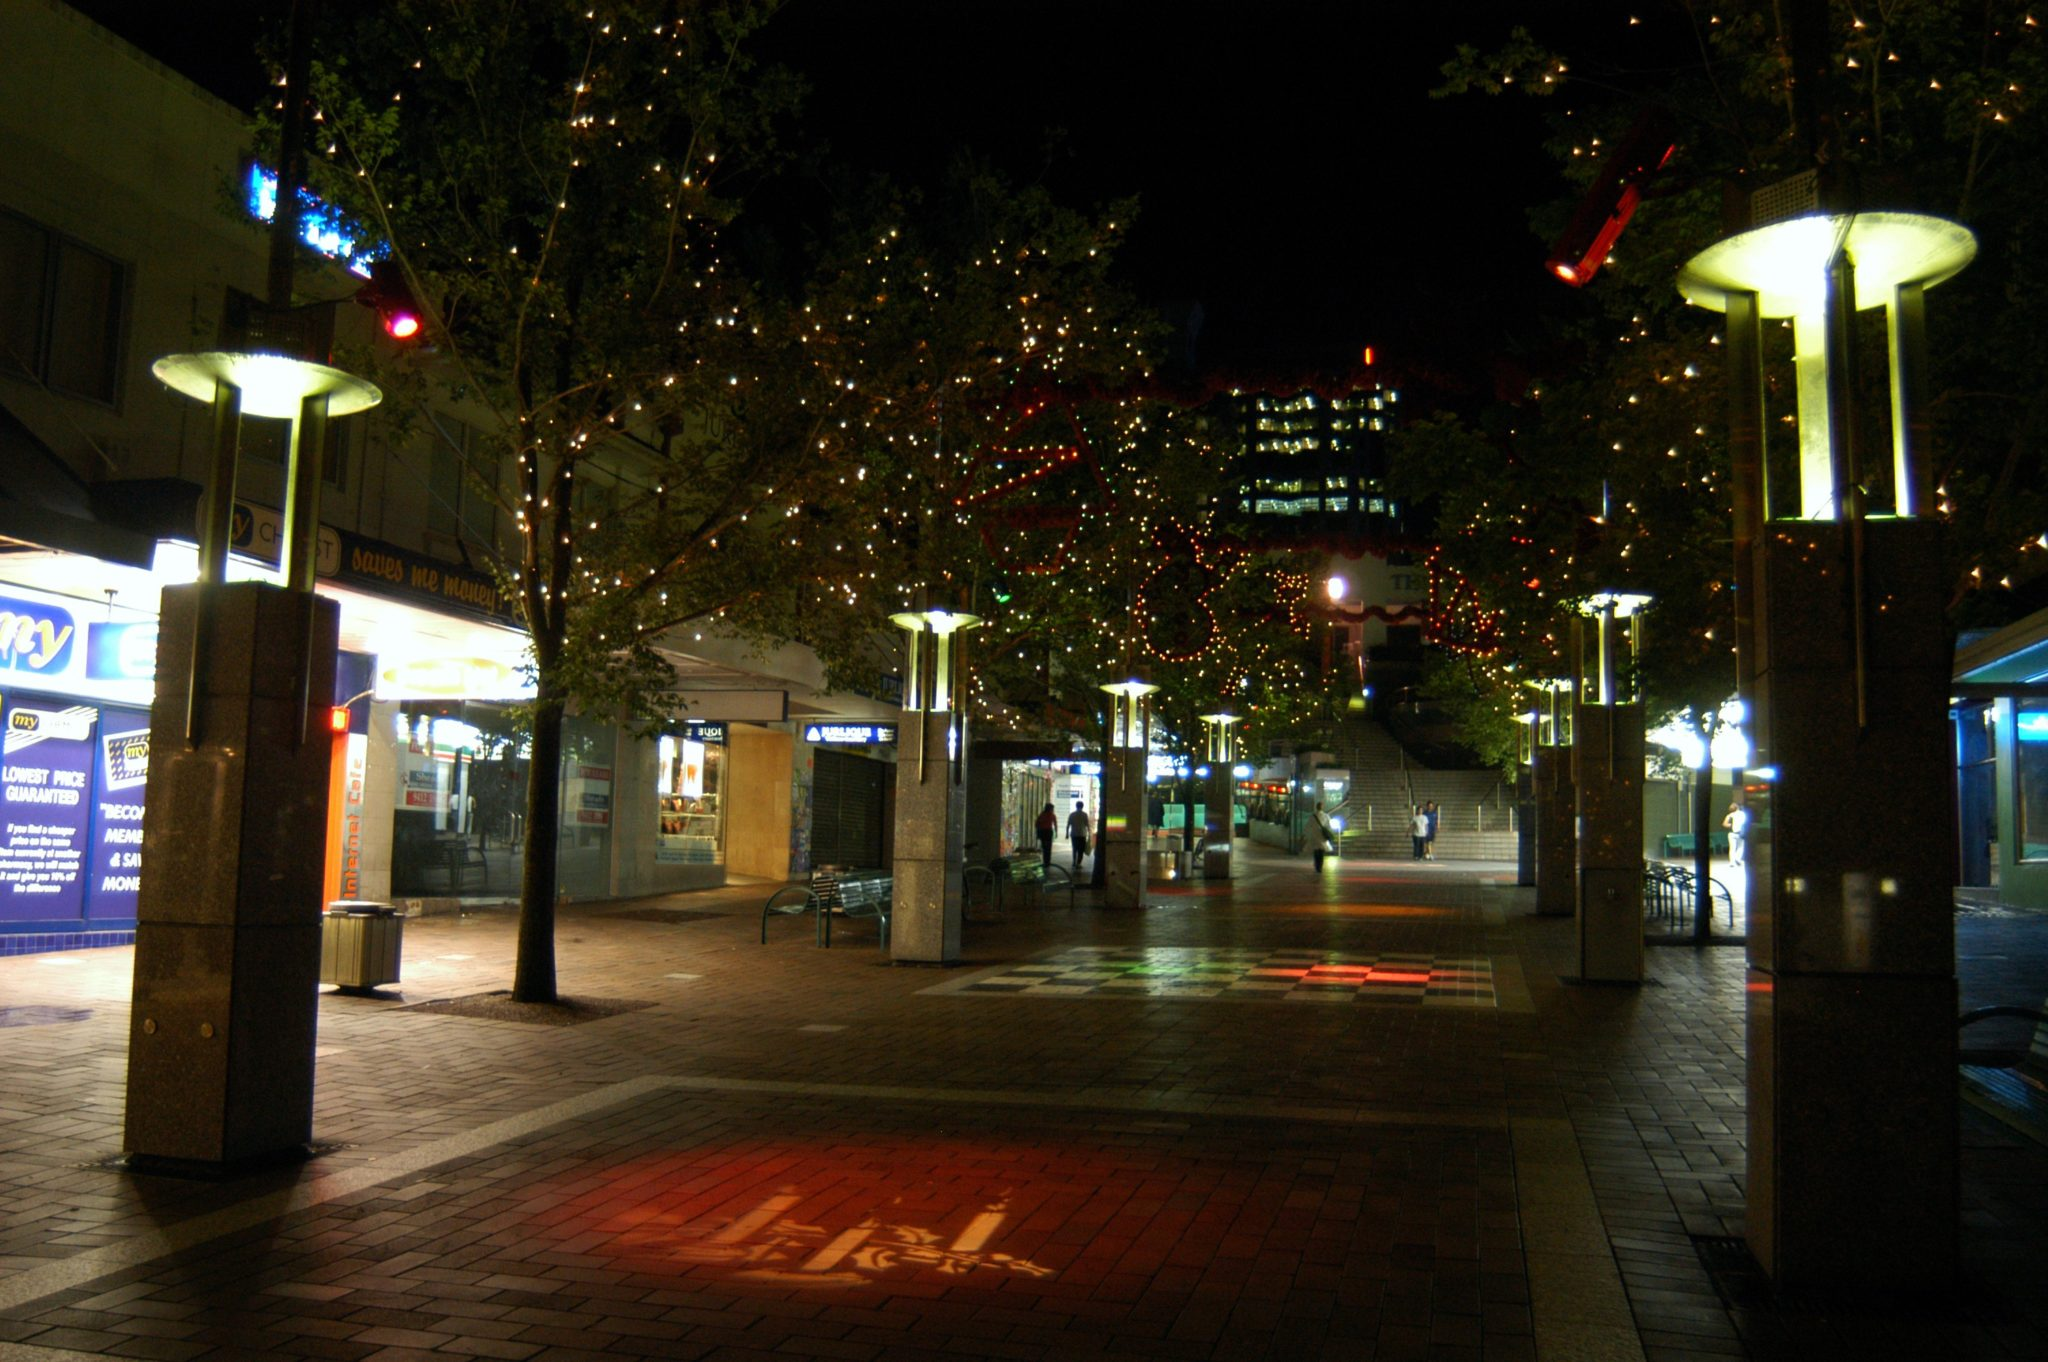 Projector lighting and tree lighting at Chatswood Mall